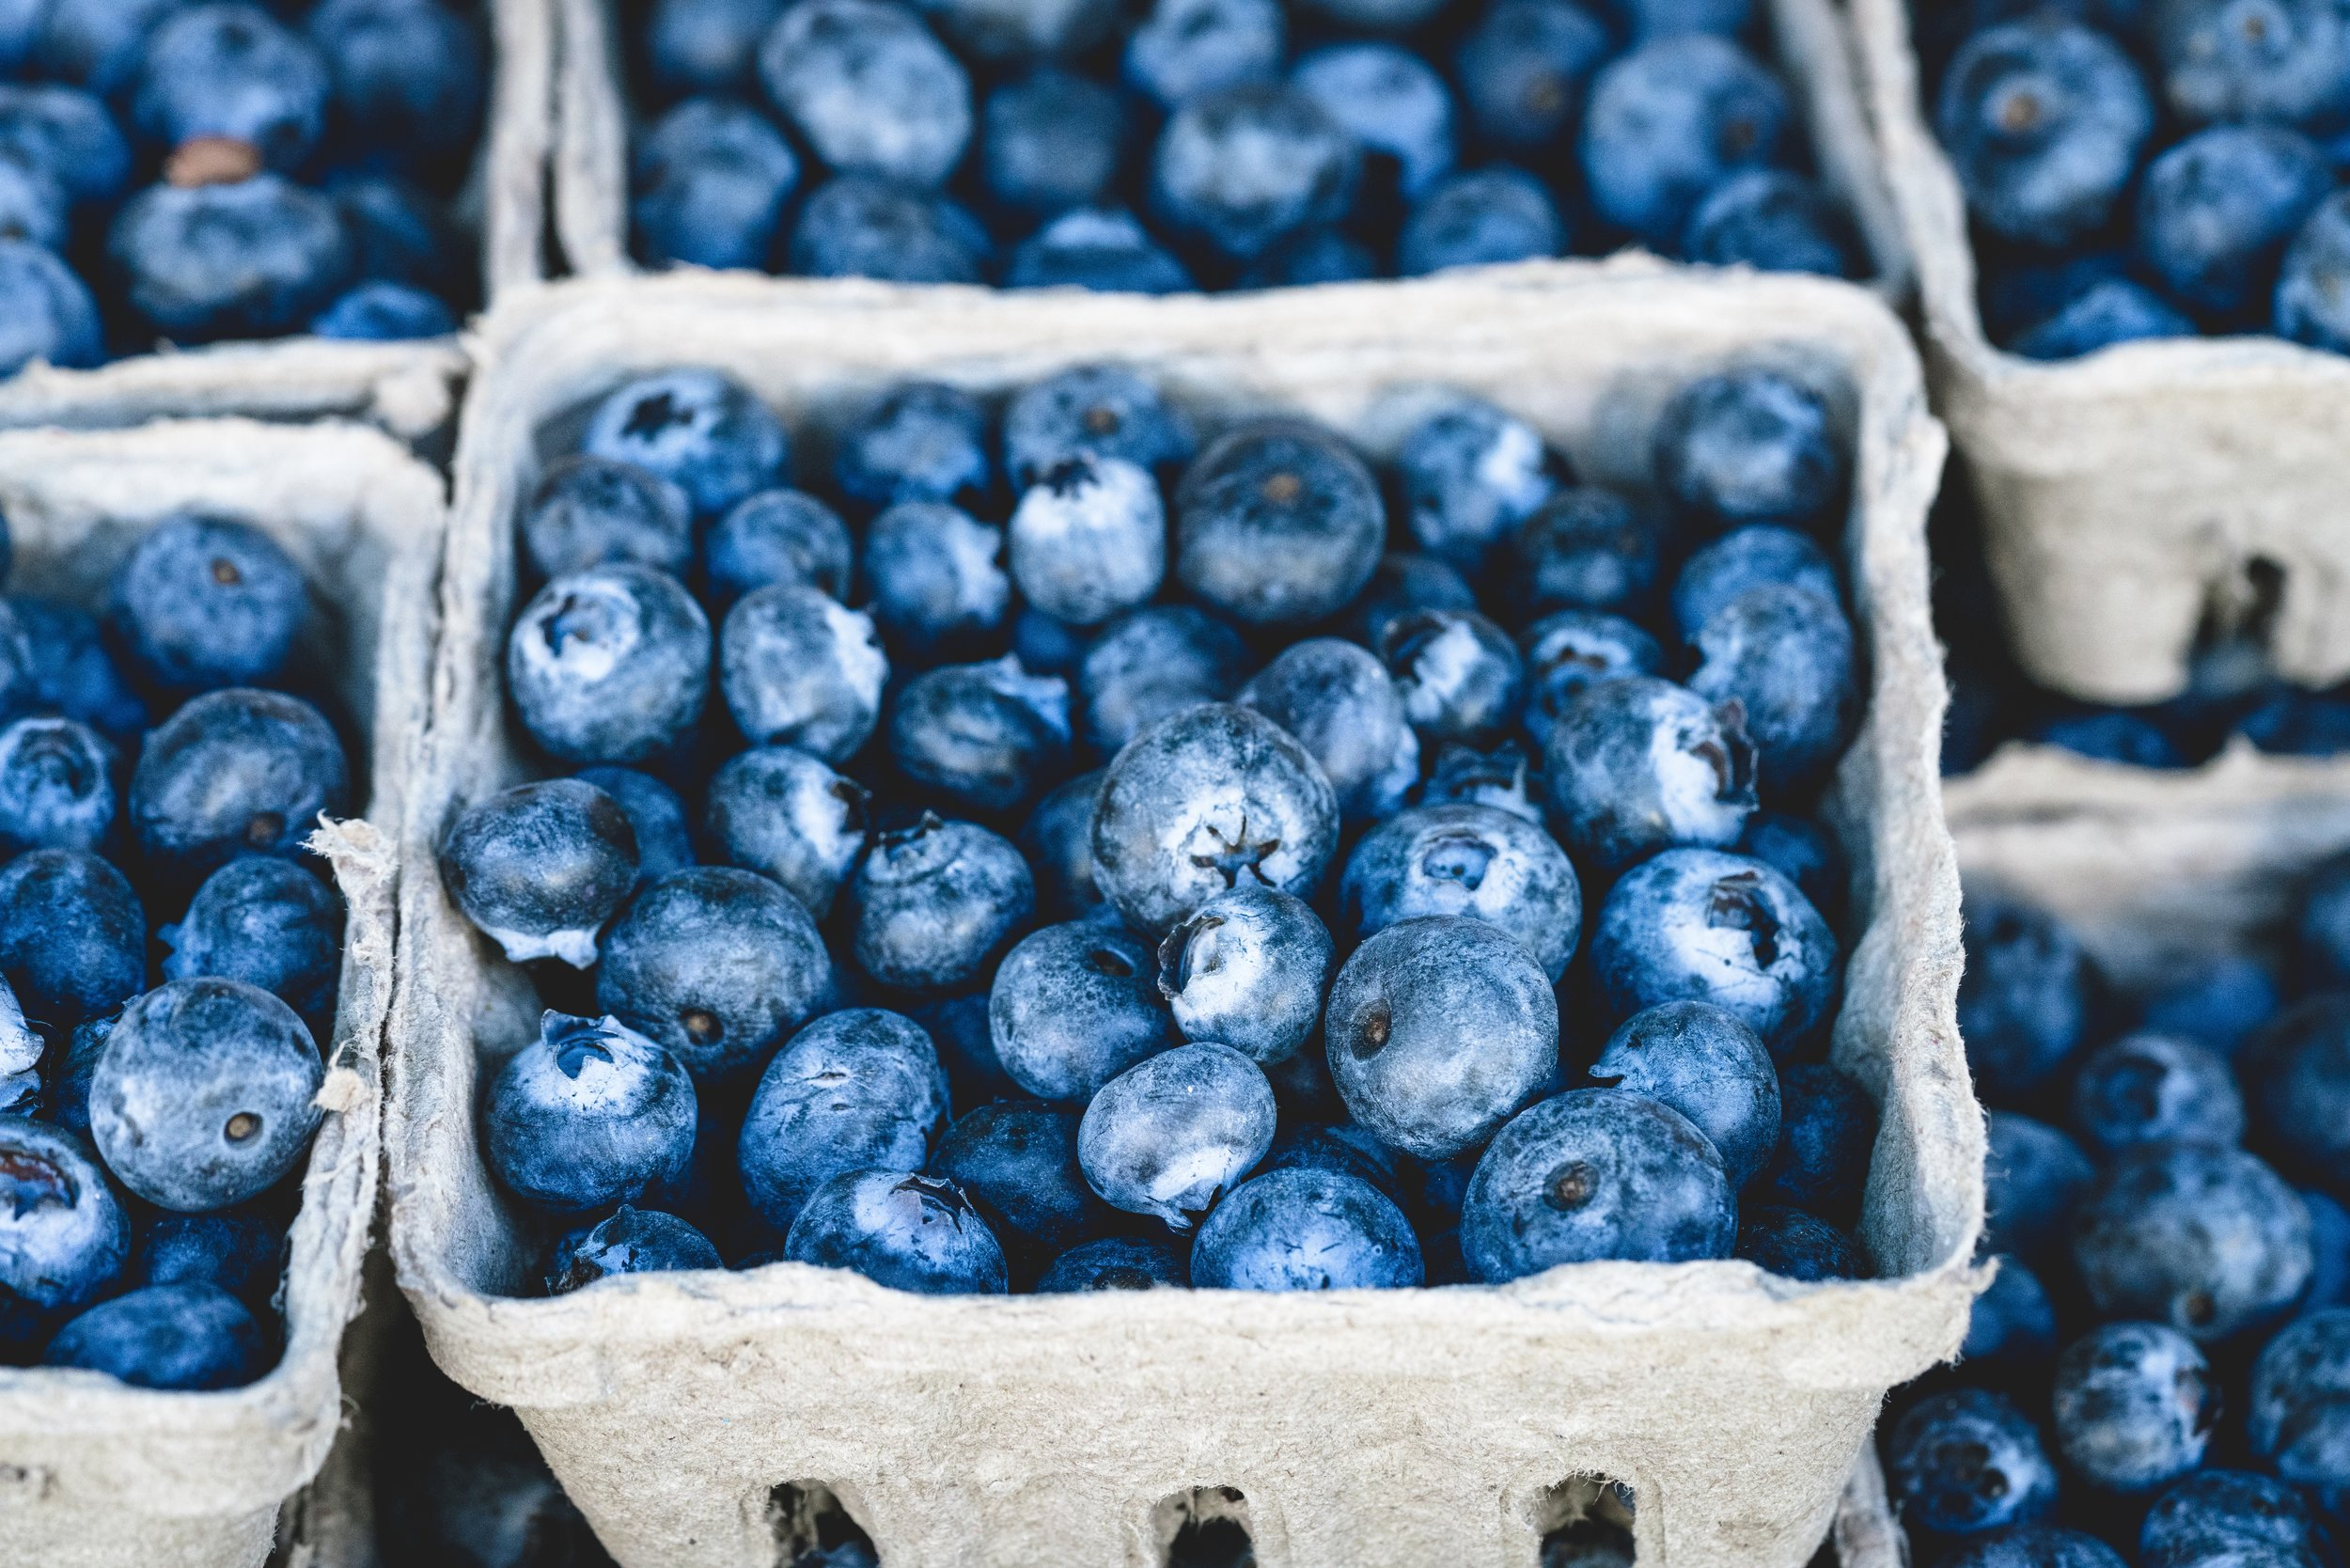 cartons of fresh Maine blueberries